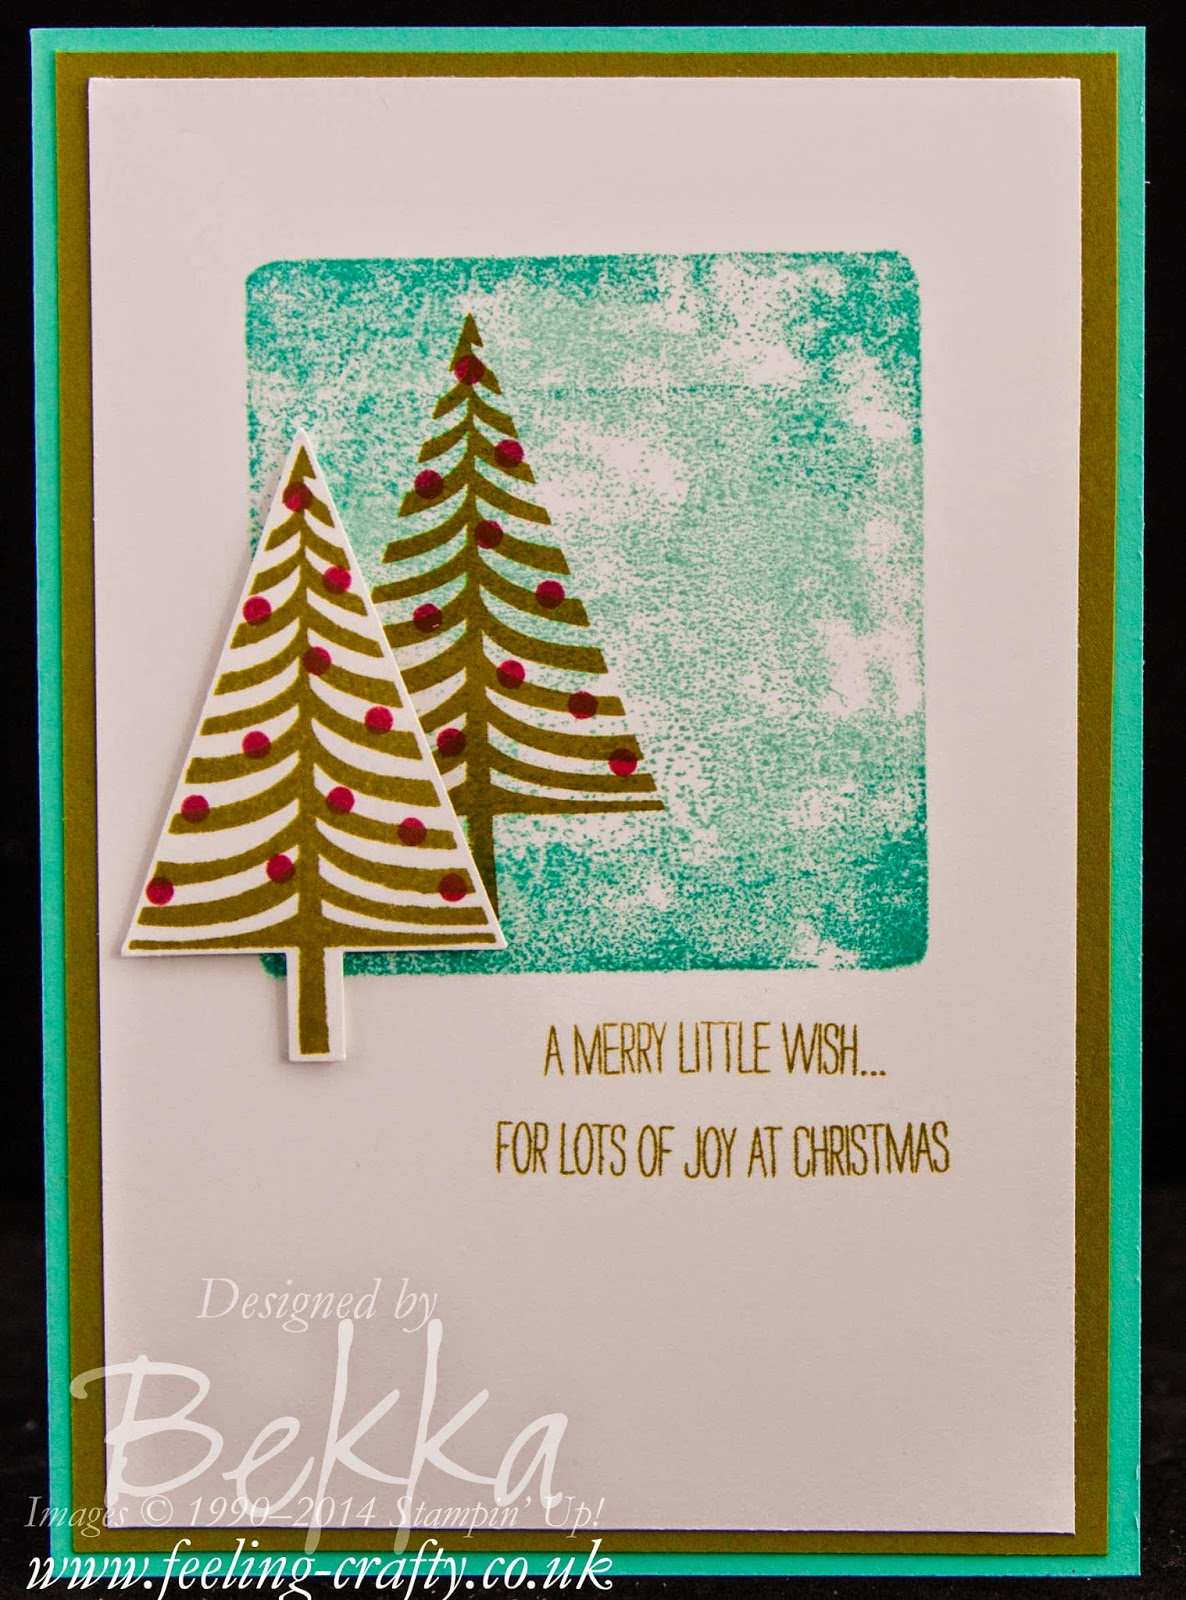 Festival of Trees Christmas Card by Stampin' Up! UK Independent Demonstrator Bekka Prideuaux - check her blog for lots of cute ideas